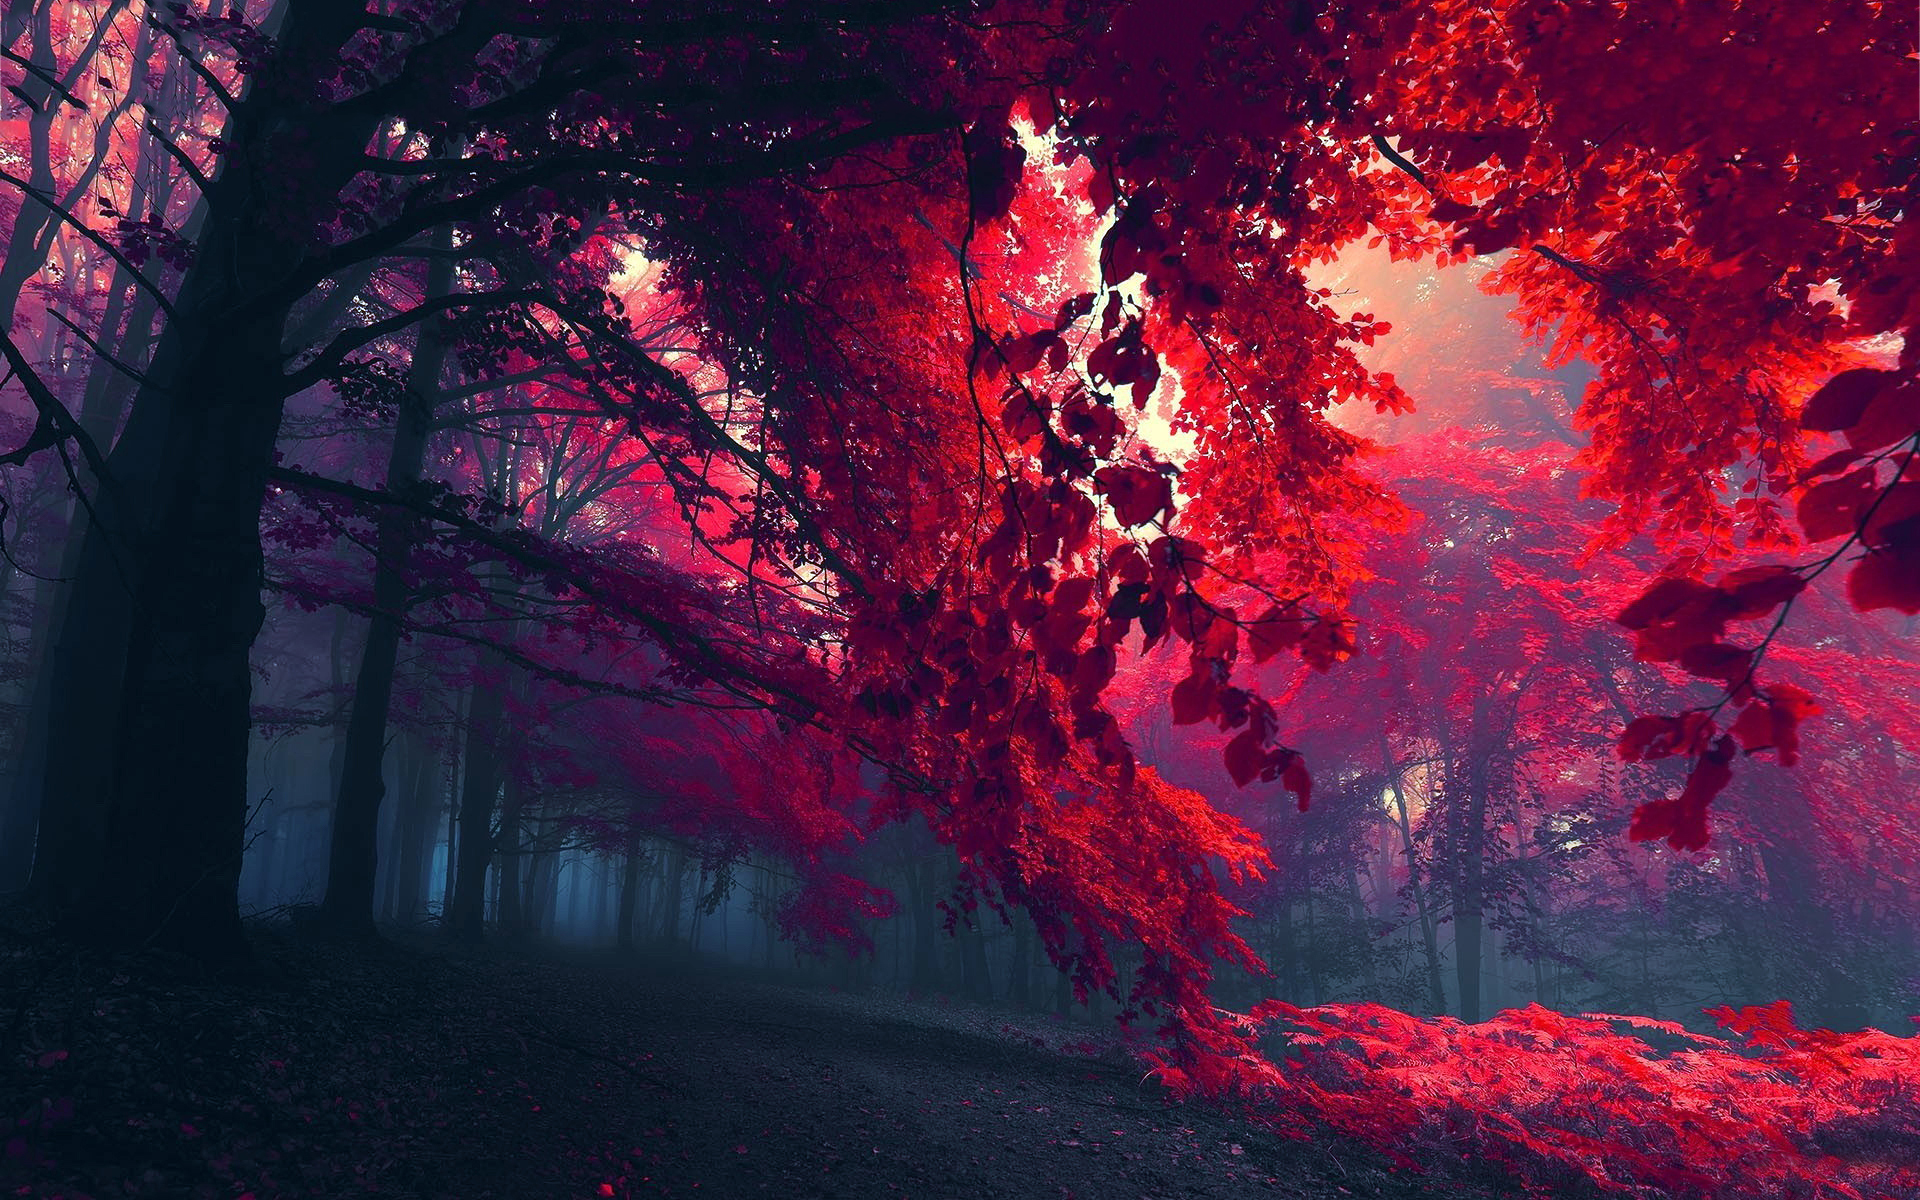 Autumn red foliage